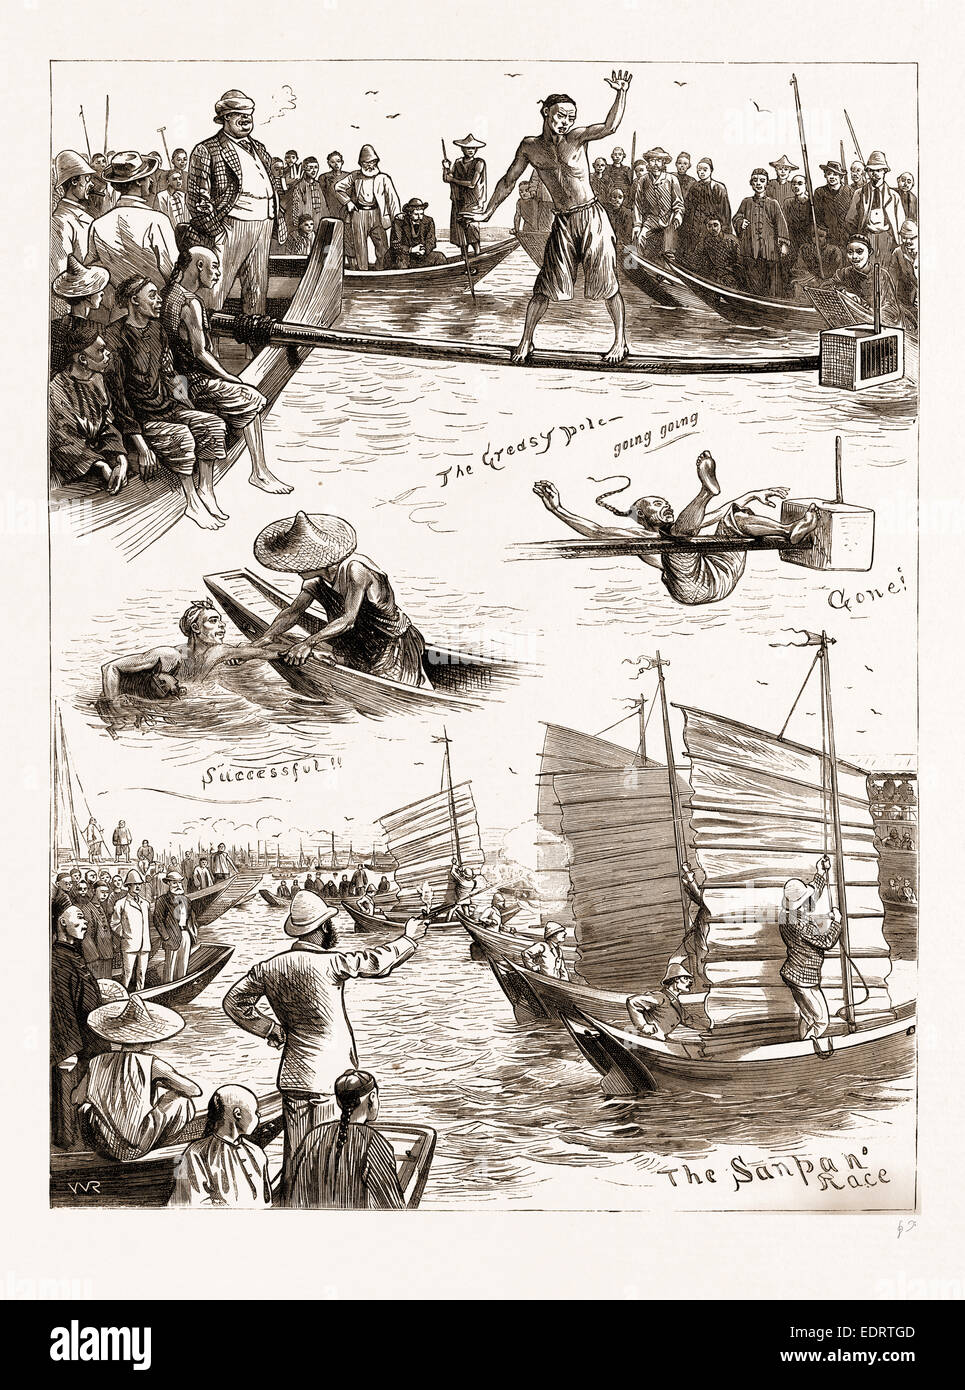 AQUATIC SPORTS AT AMOY, 1883; THE GREASY POLE, THE SANPAN RACE - Stock Image